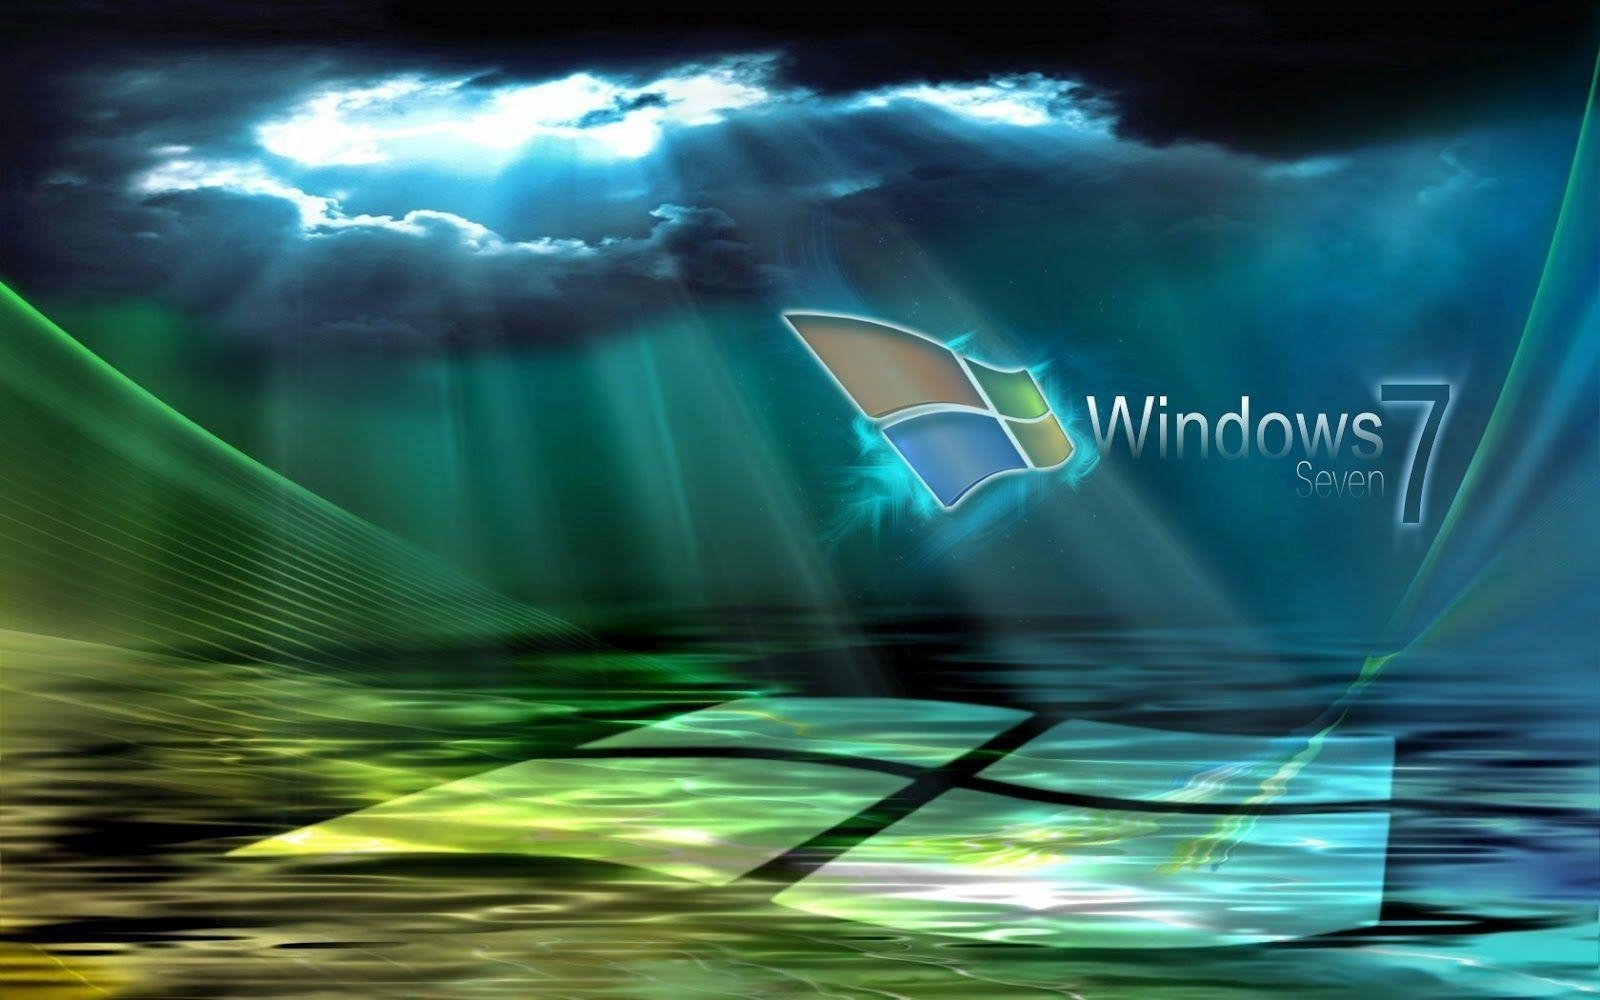 free wallpapers for pc windows 7 - wallpaper cave